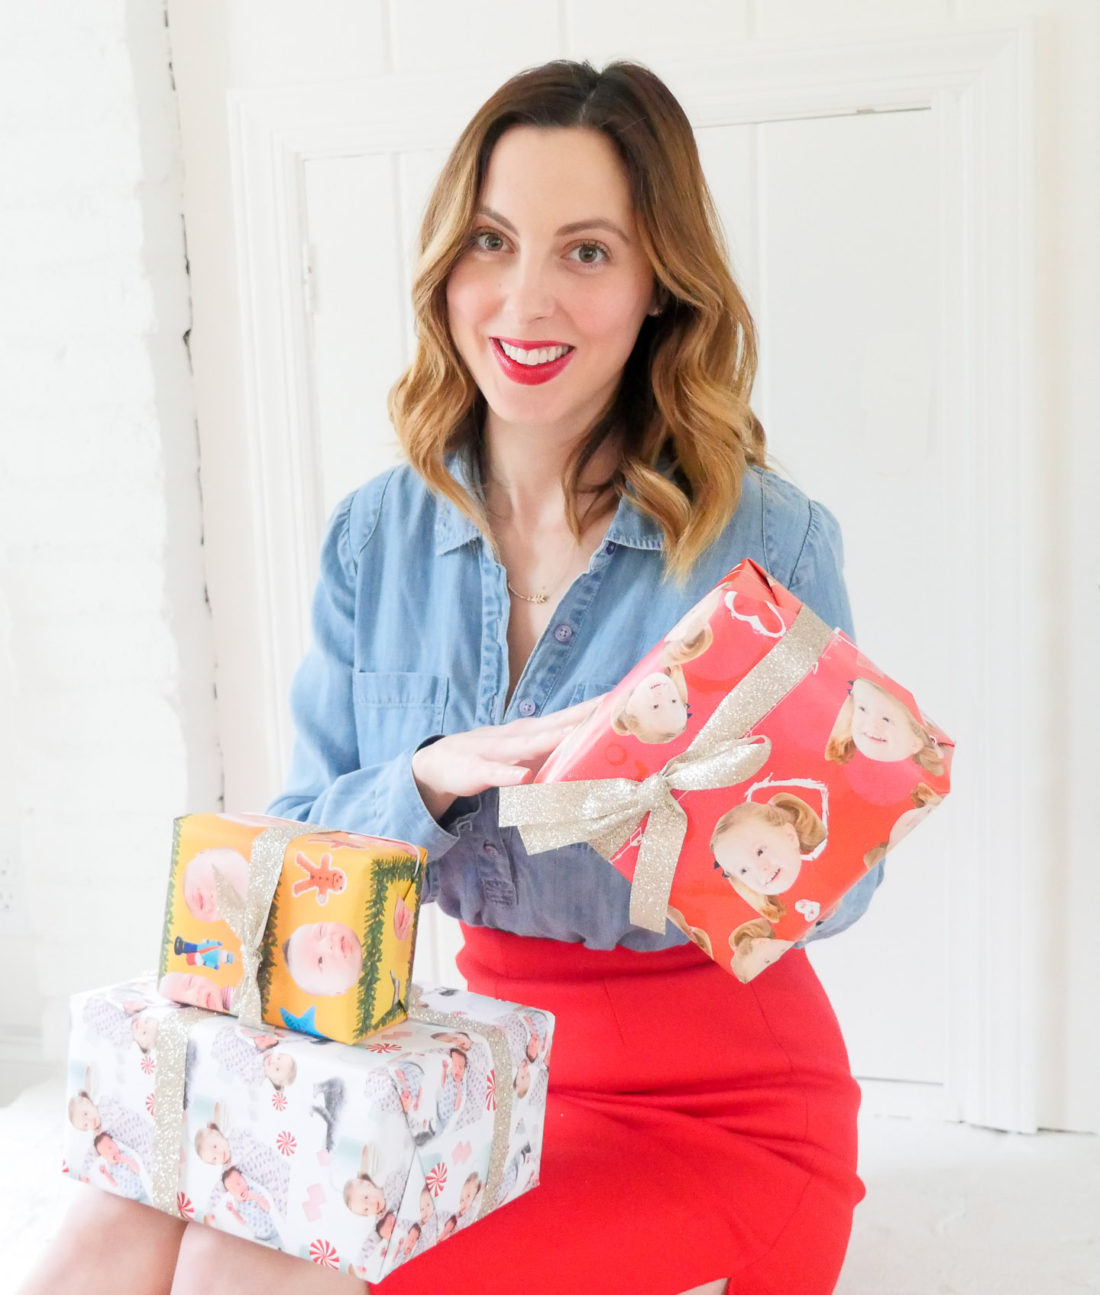 Eva Amurri Martino of lifestyle and motherhood blog Happily Eva After, wearing a red skirt and chambray top and holding wrapped holiday gifts with her children's faces on them